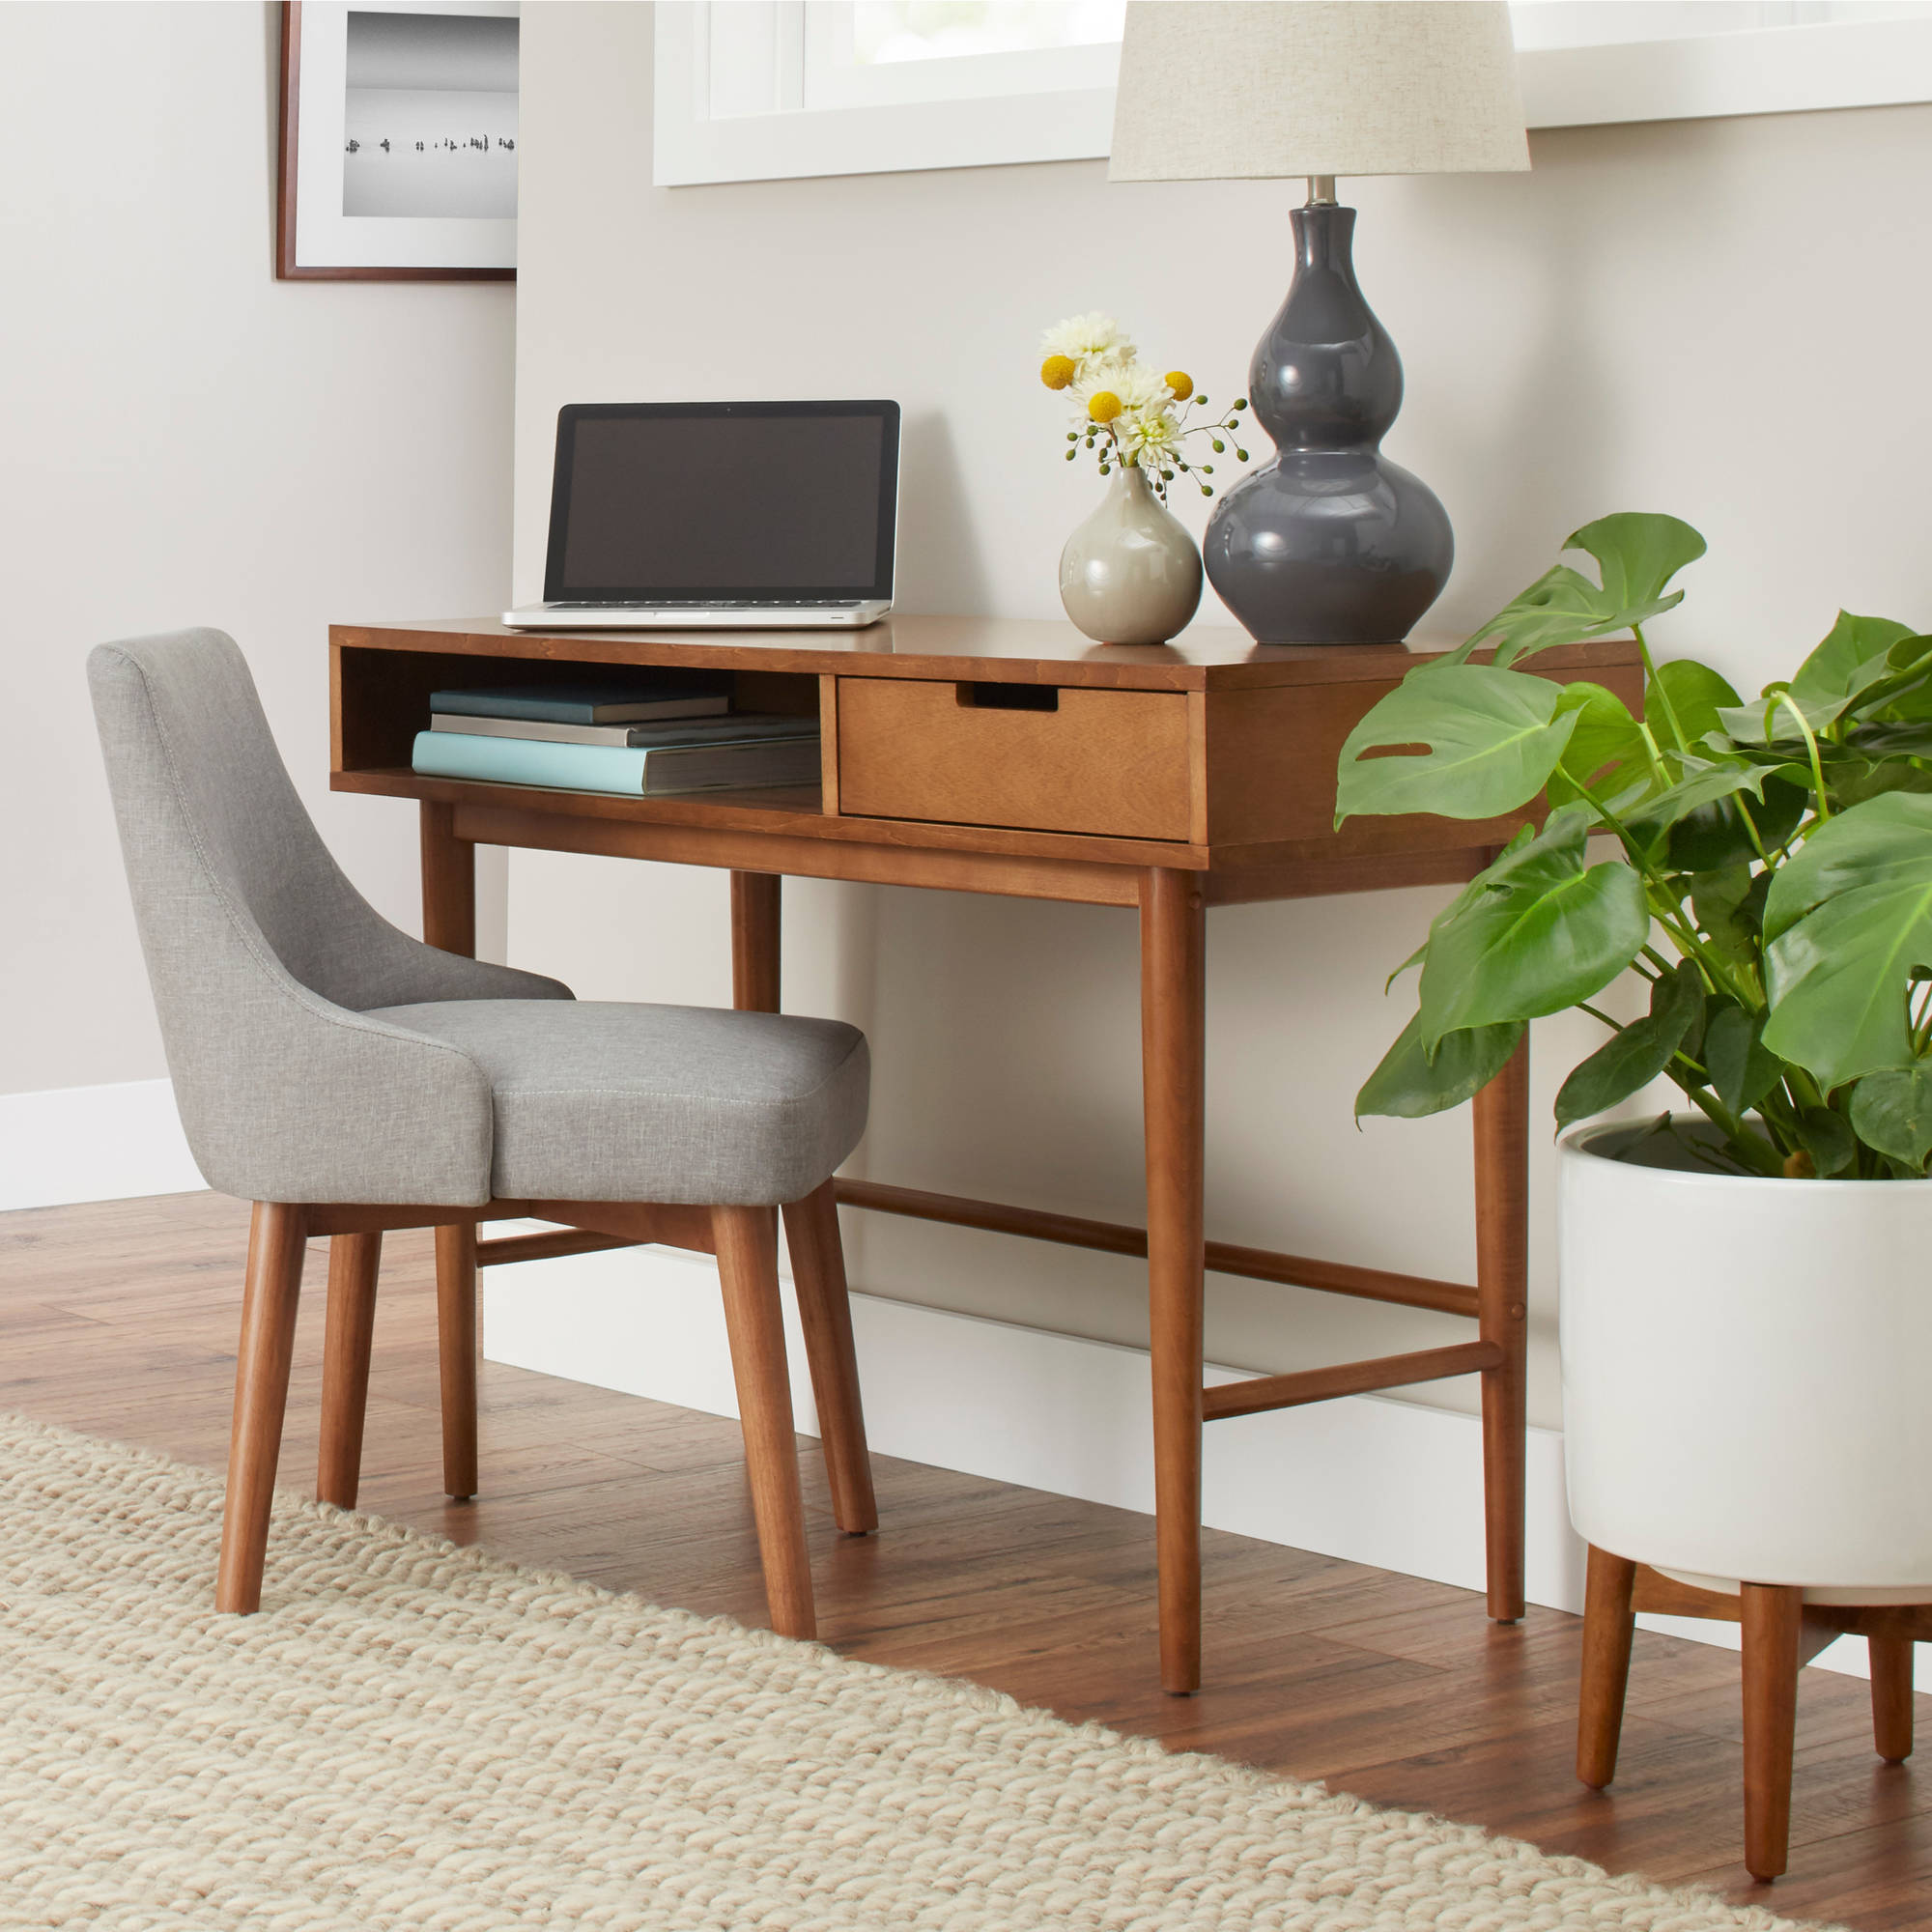 Modern Desk better homes and gardens flynn mid century modern desk, pecan